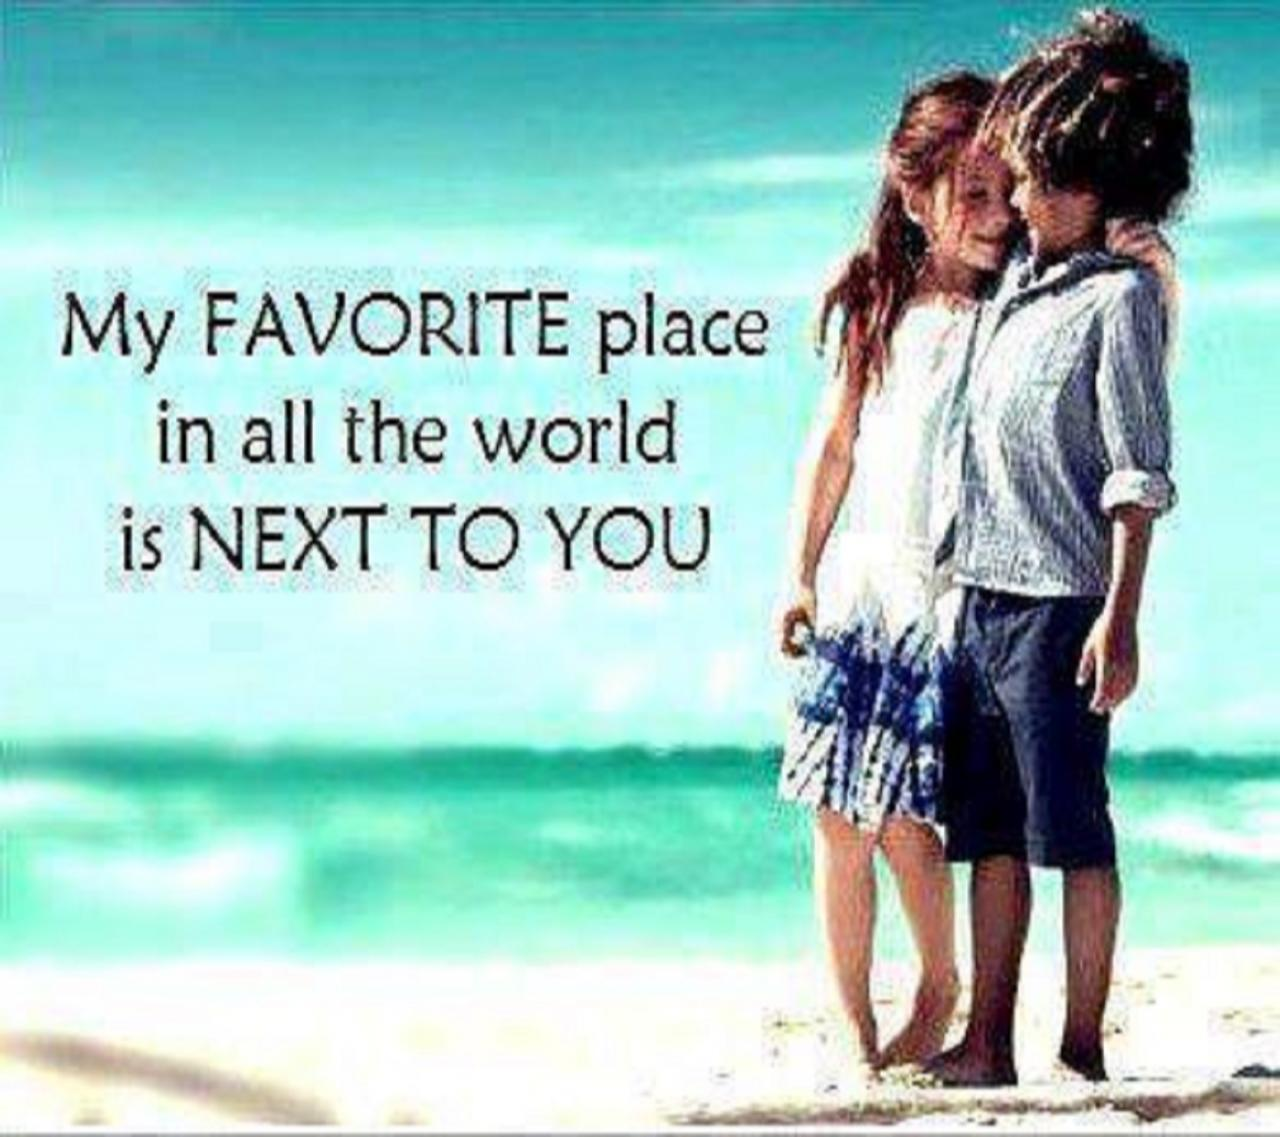 Hindi Love Quotes For Him Lovely Quotes For Him For Friends On Life For Her Images